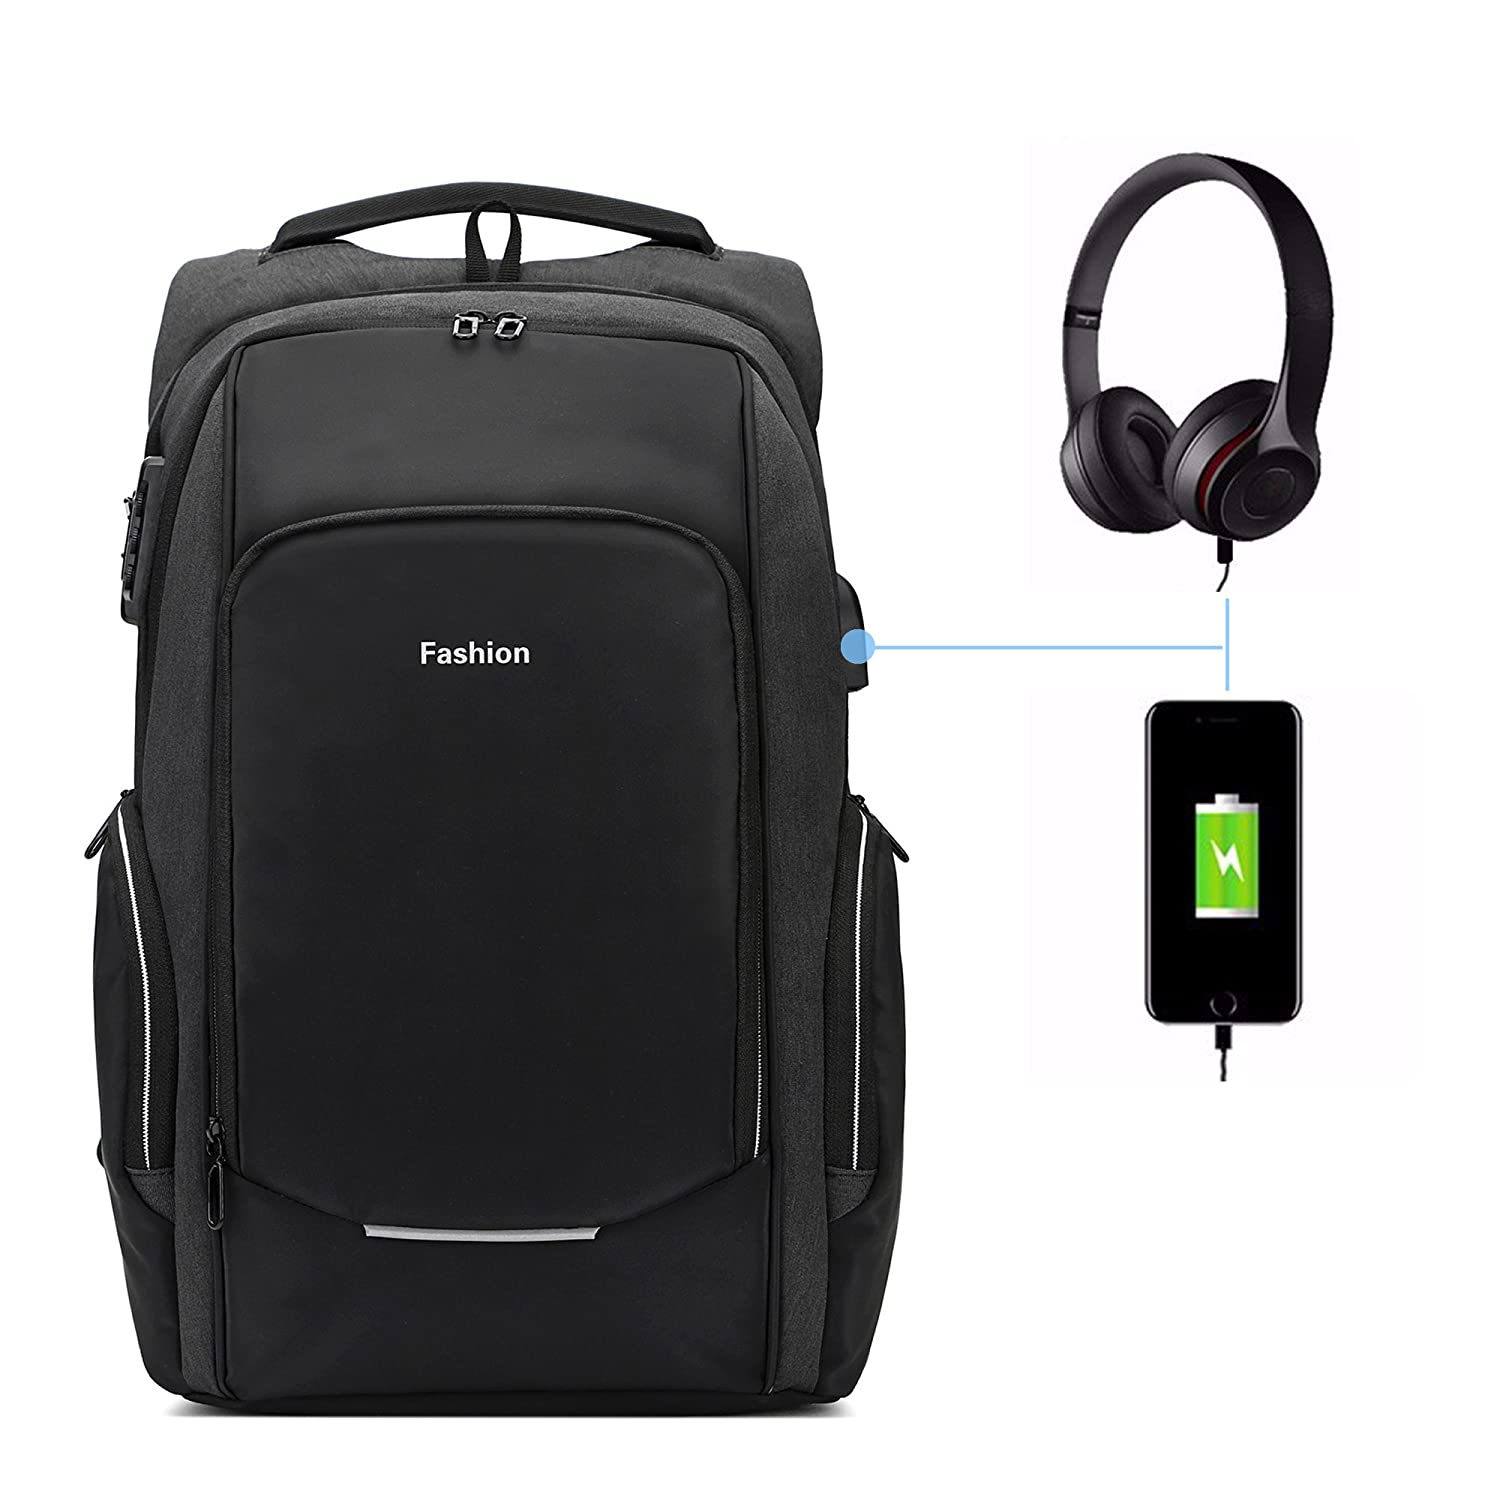 ANTI-THEFT Laptop Backpack, computer backpack with USB Charging Port Headphone port large capacity for travel,business business (black)